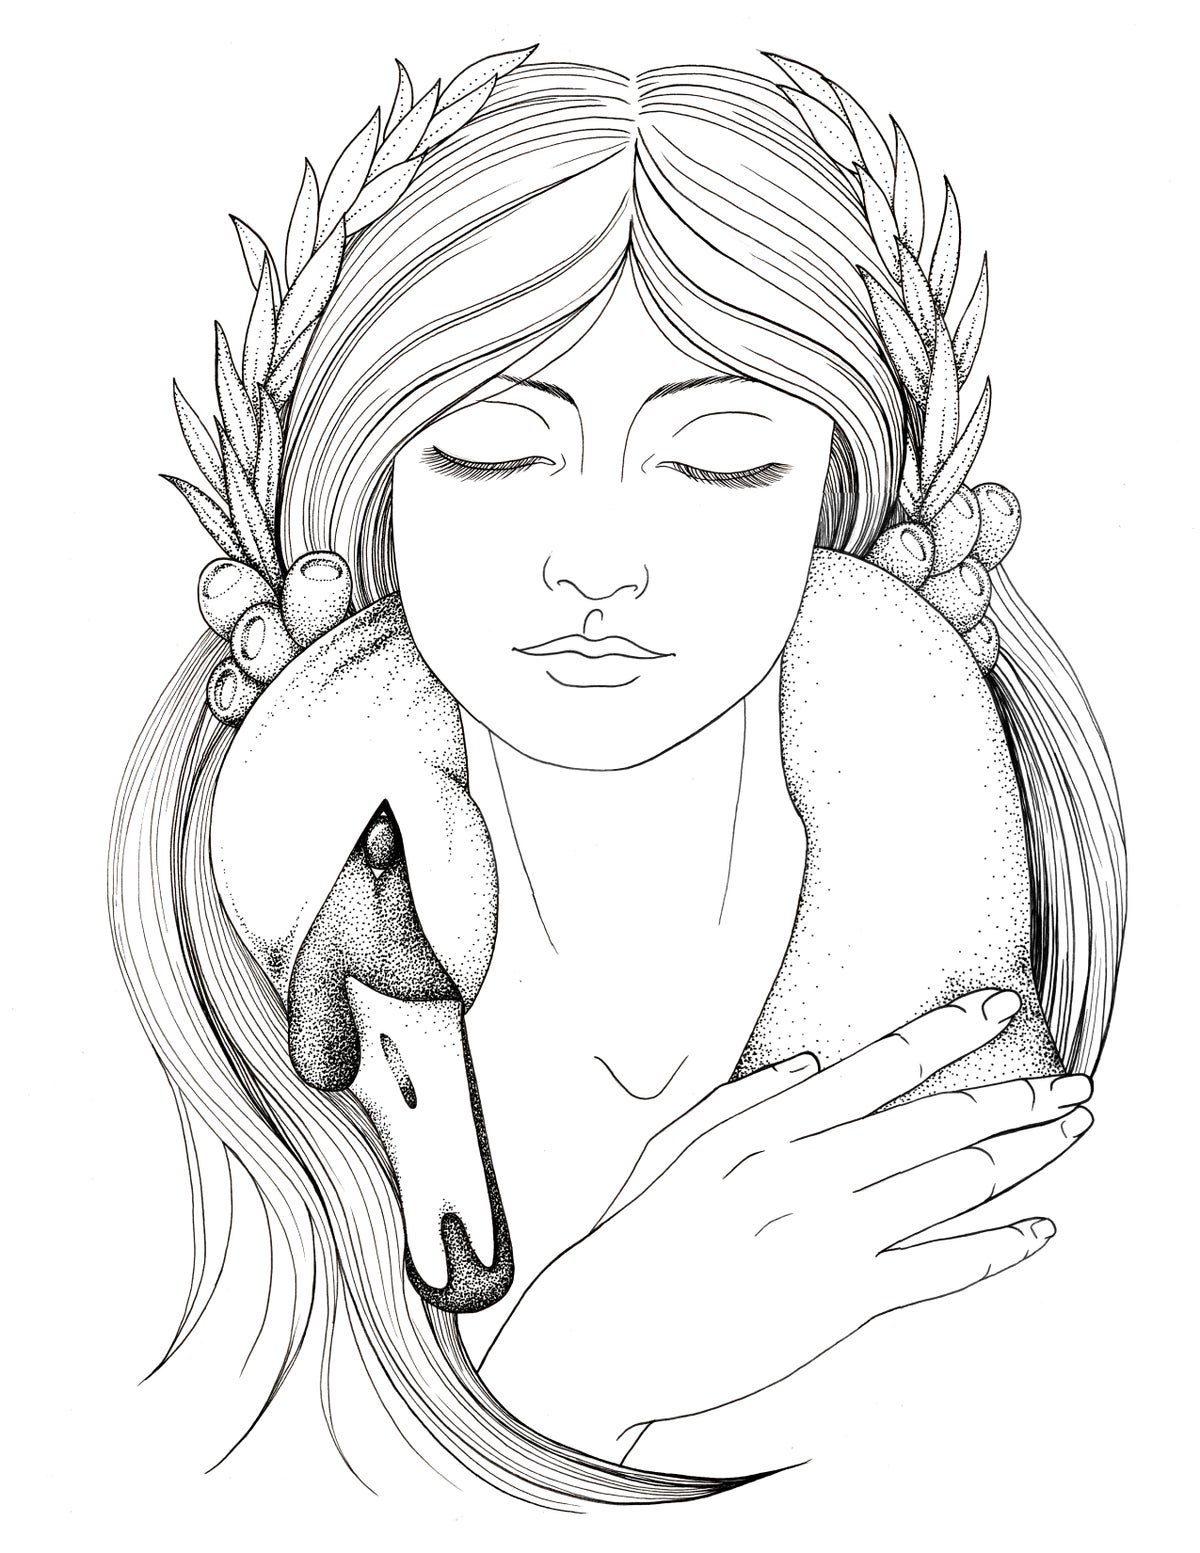 Image of Caer Ibormeith, goddess of dreams and prophecy, art print